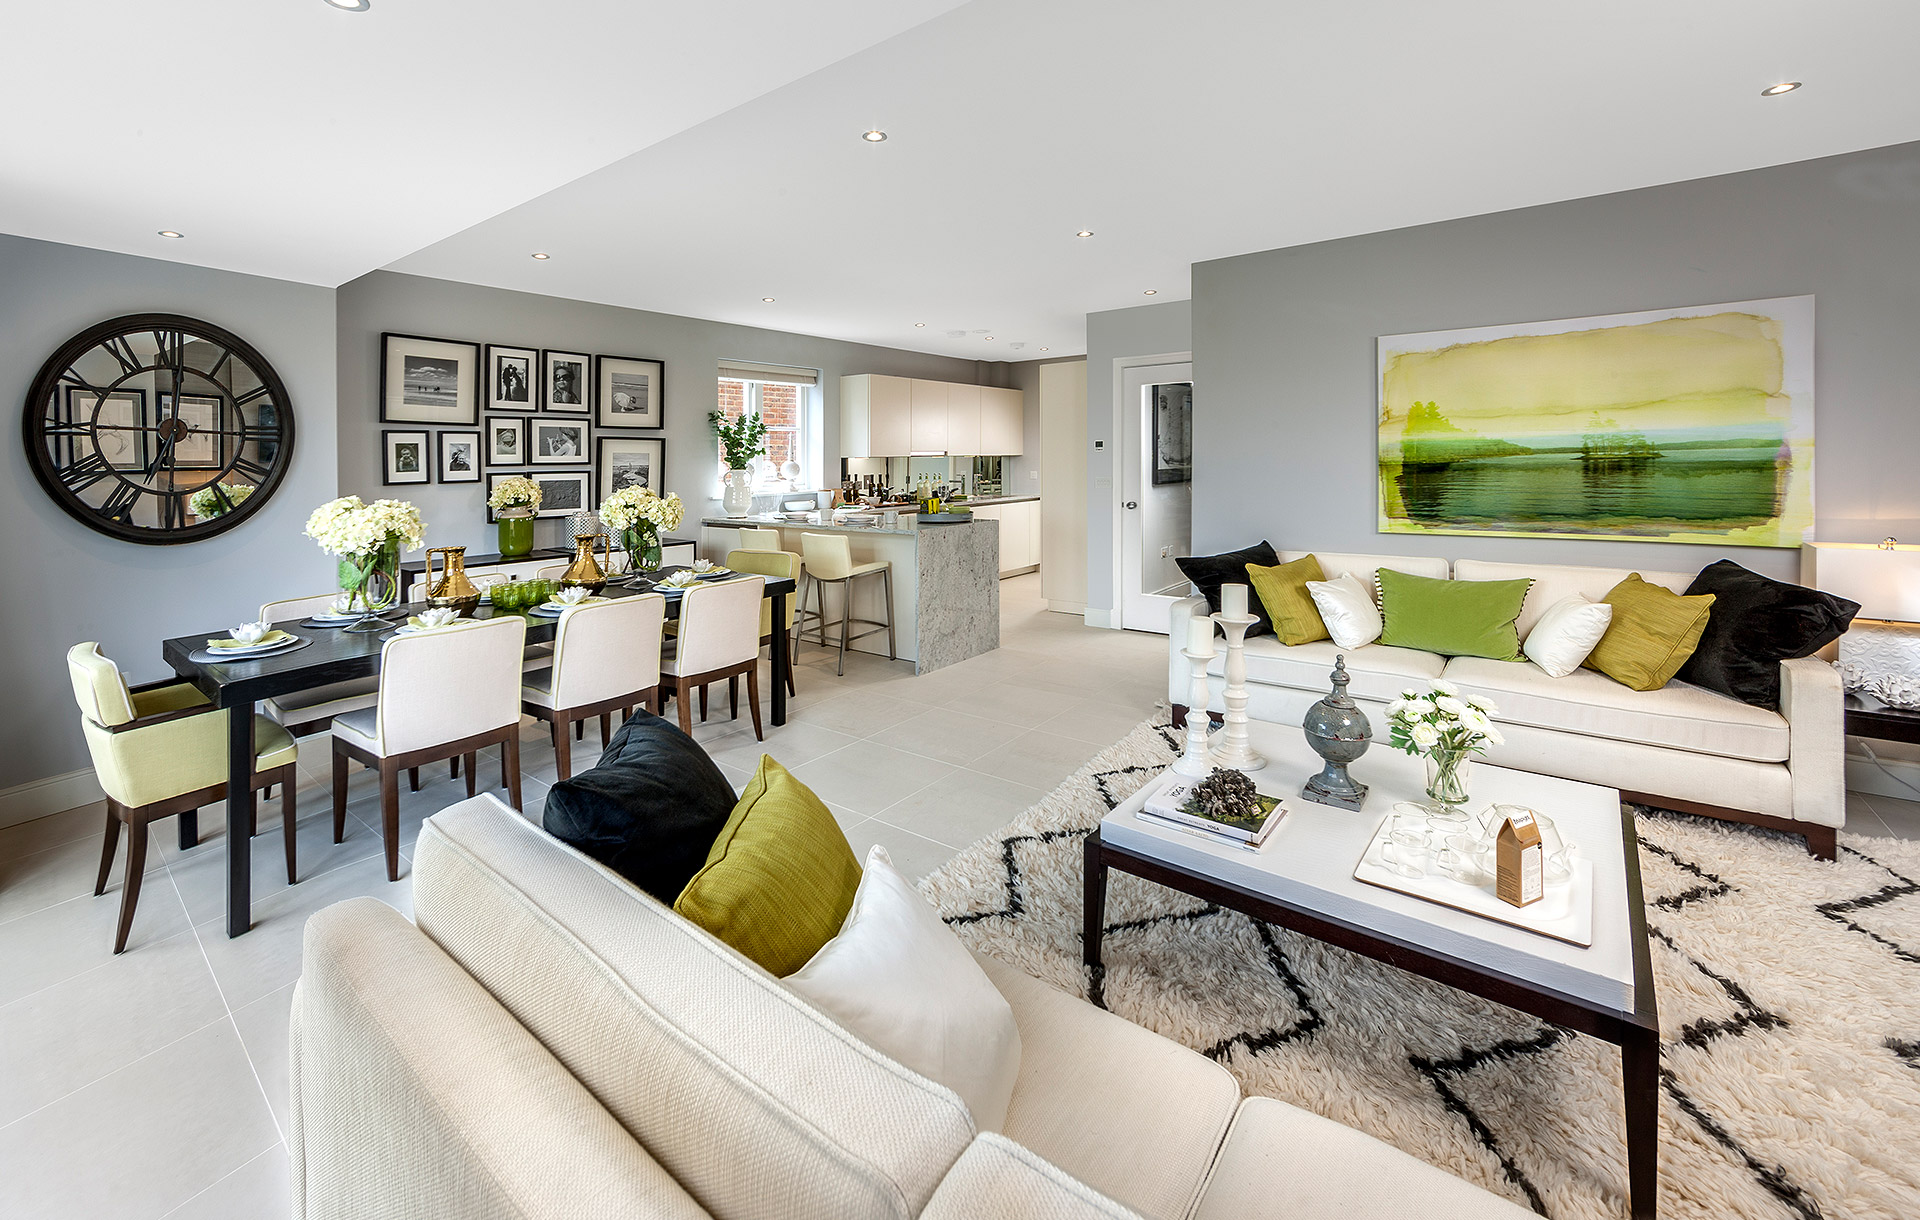 <p>A new London Square home could be yours sooner than you think with our Part Exchange Scheme.</p>